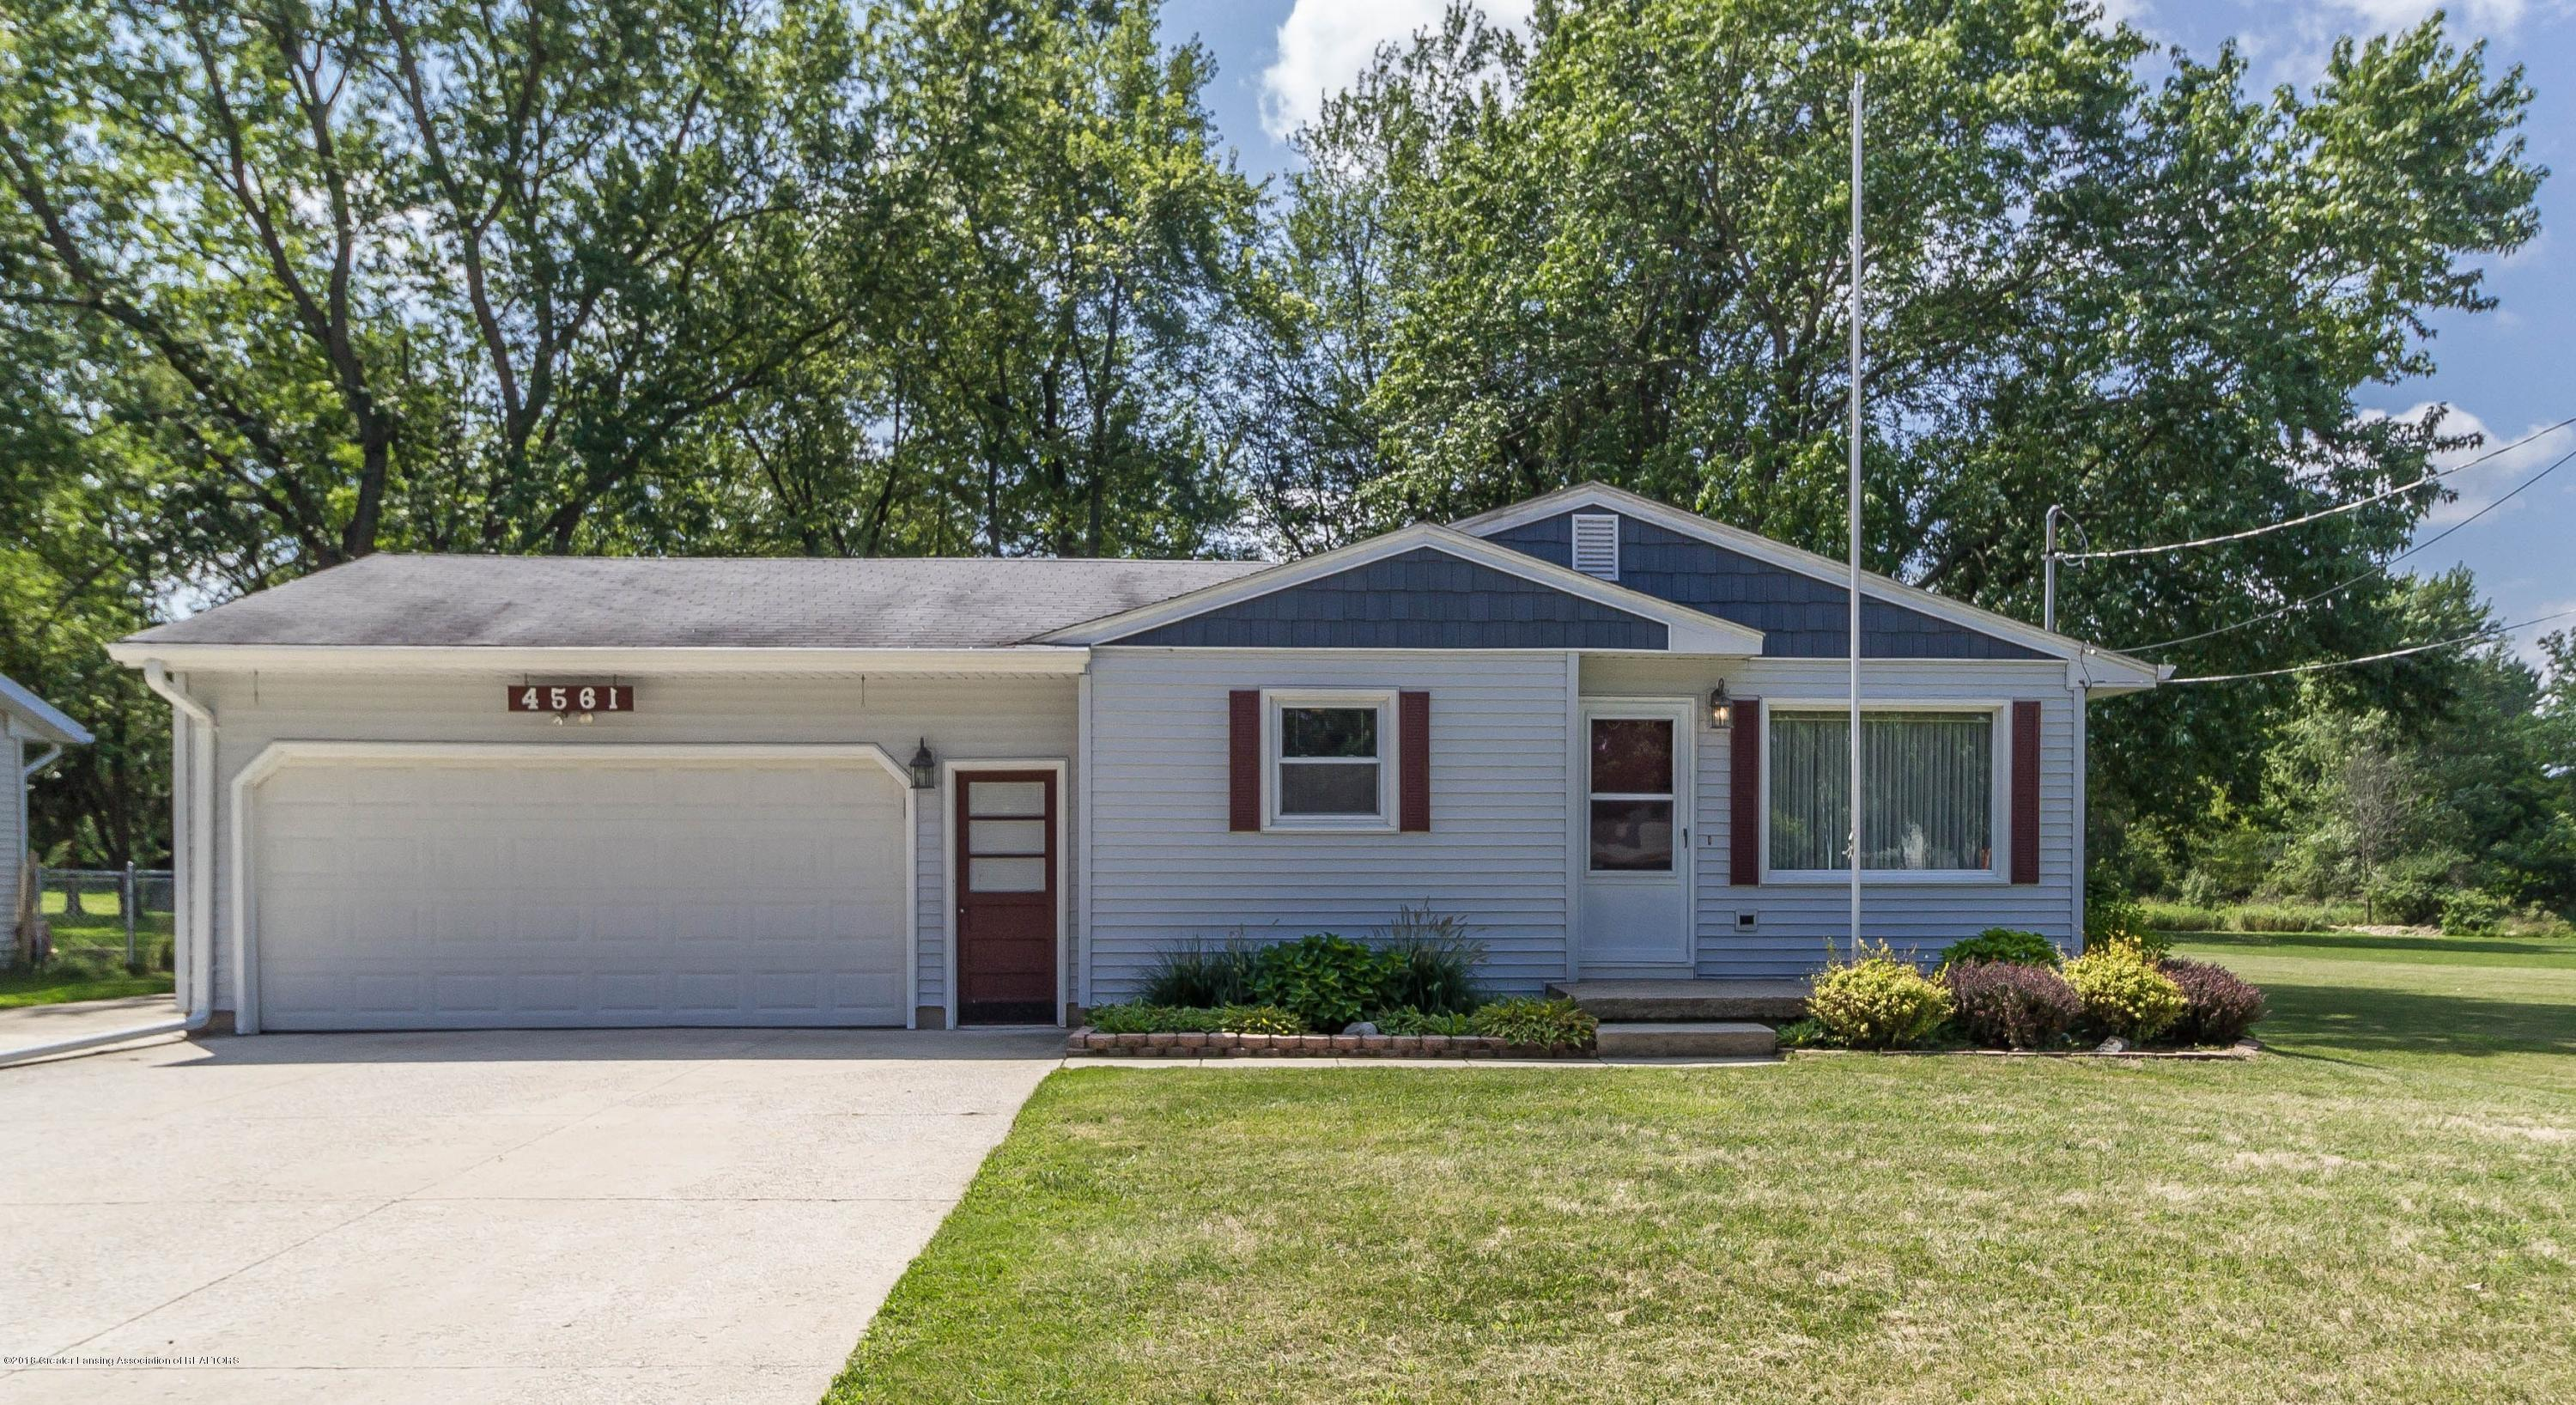 4561 Wilcox Rd - FRONT - 1